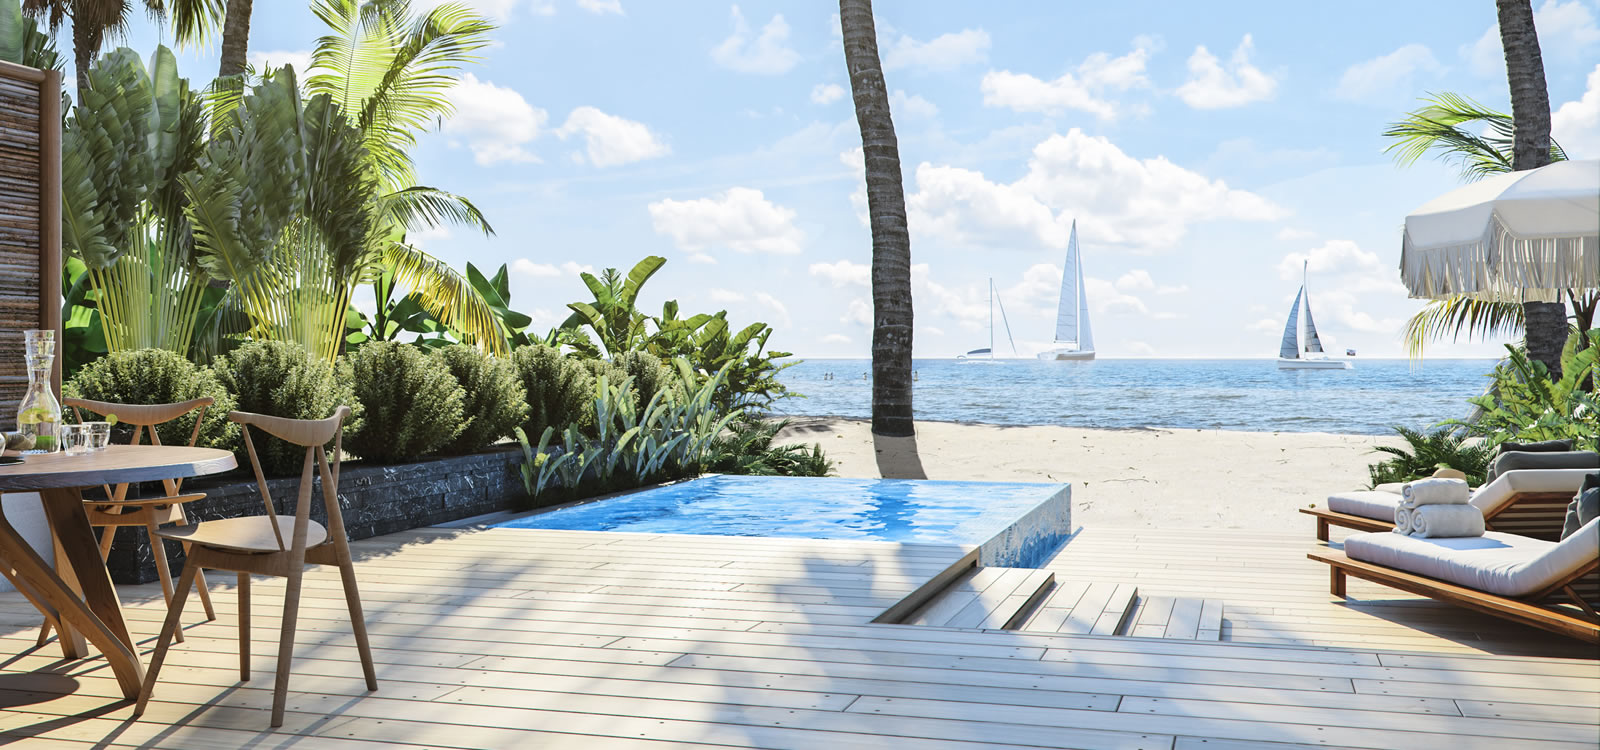 2 Bedroom Luxury Beach Houses For Sale Placencia Belize